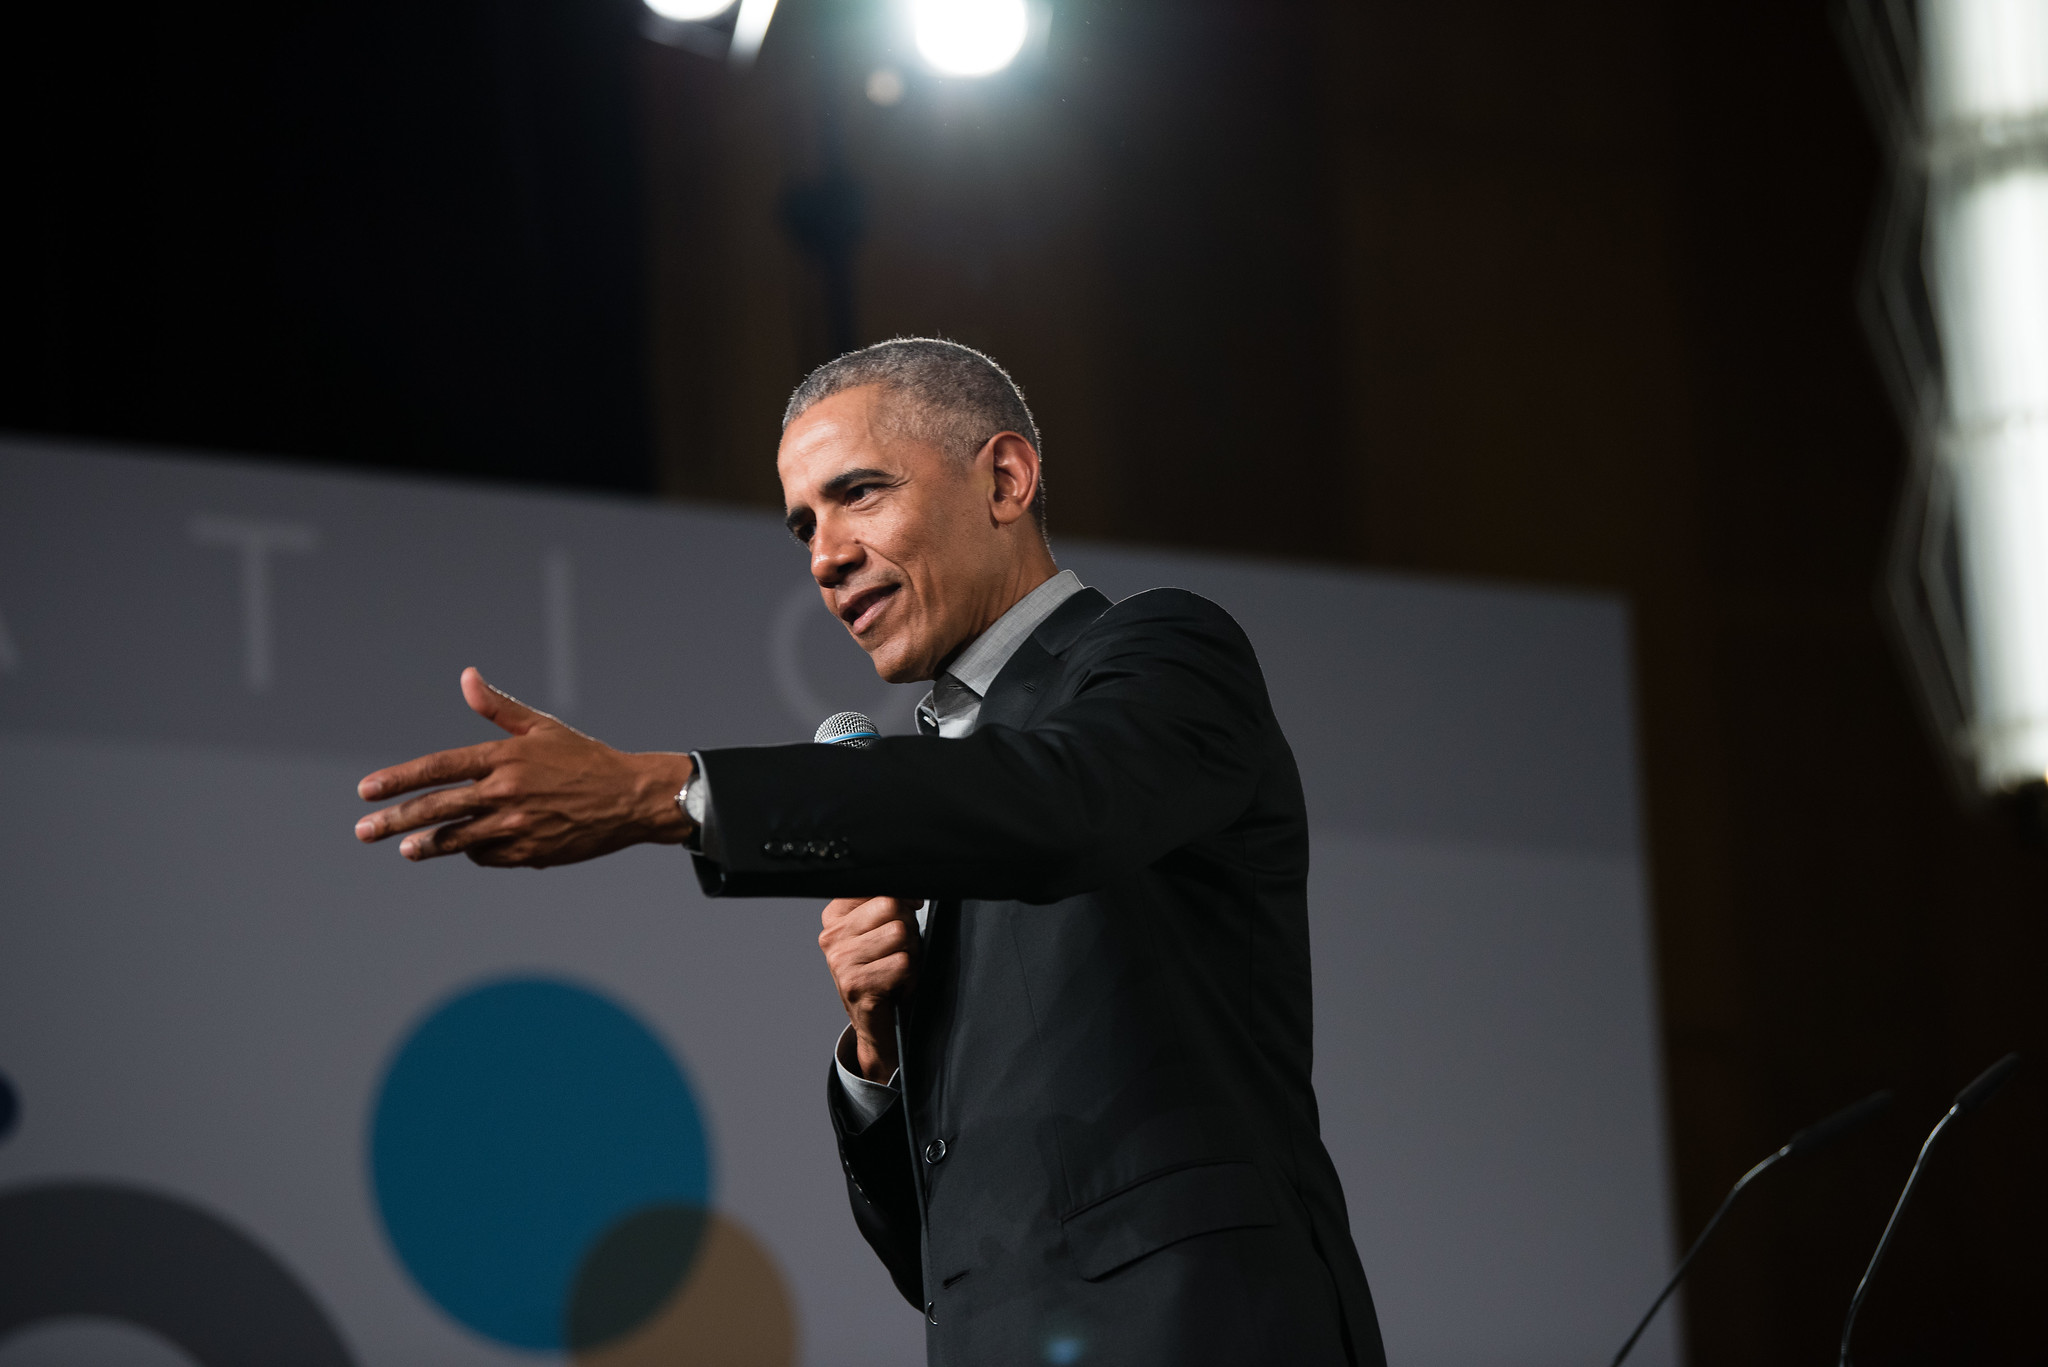 President Barack Obama at ESMT Berlin